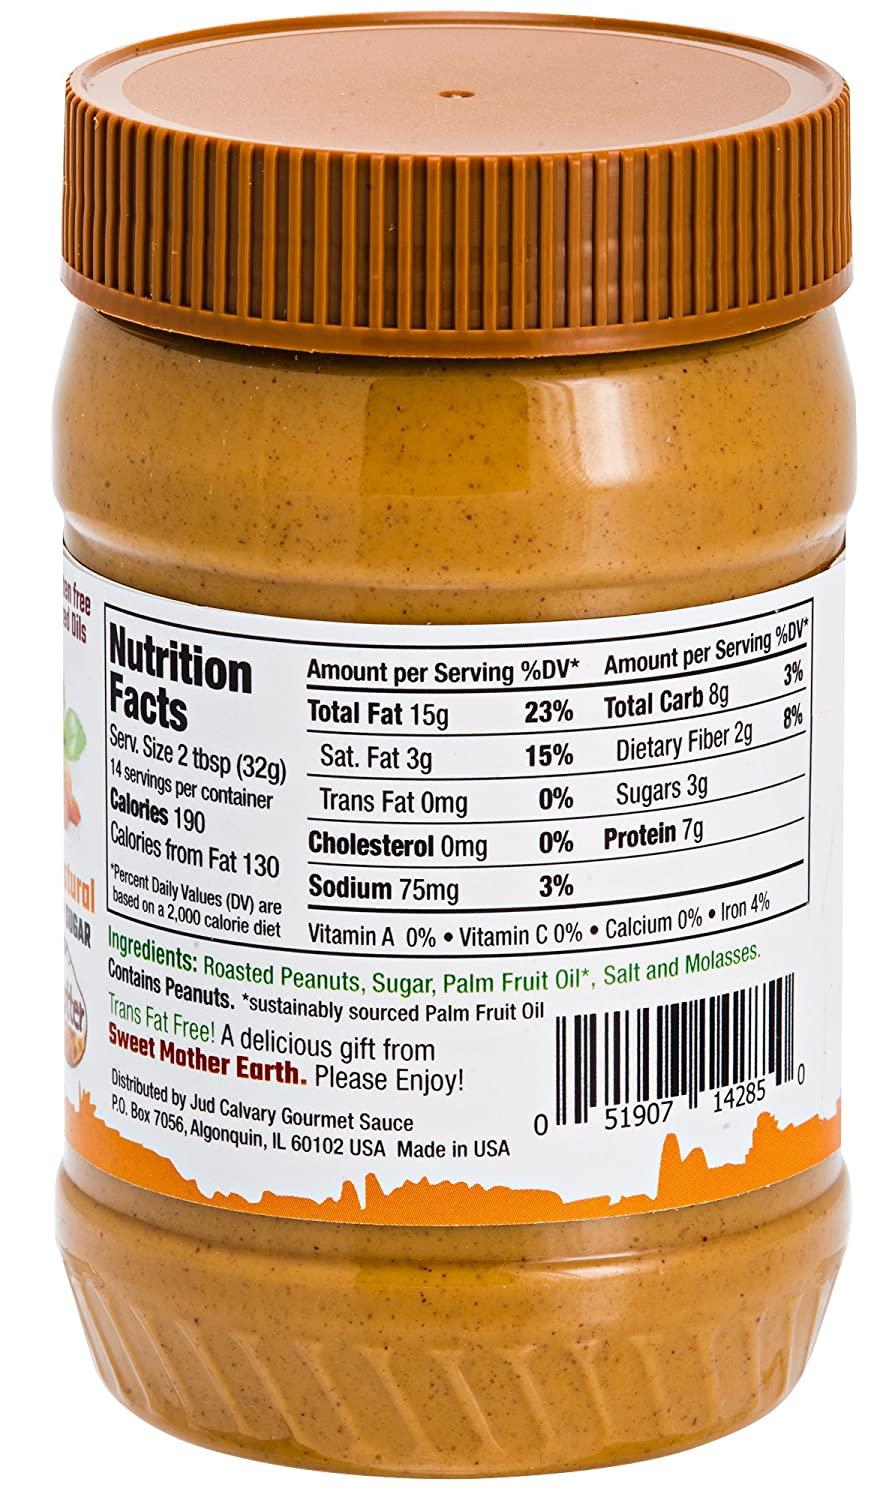 Amazon.com : Earth OSweet Peanut Butter. All Natural. Gluten Free. VEGAN. No Hydrogenated Oils. No Cholesterol : Grocery & Gourmet Food